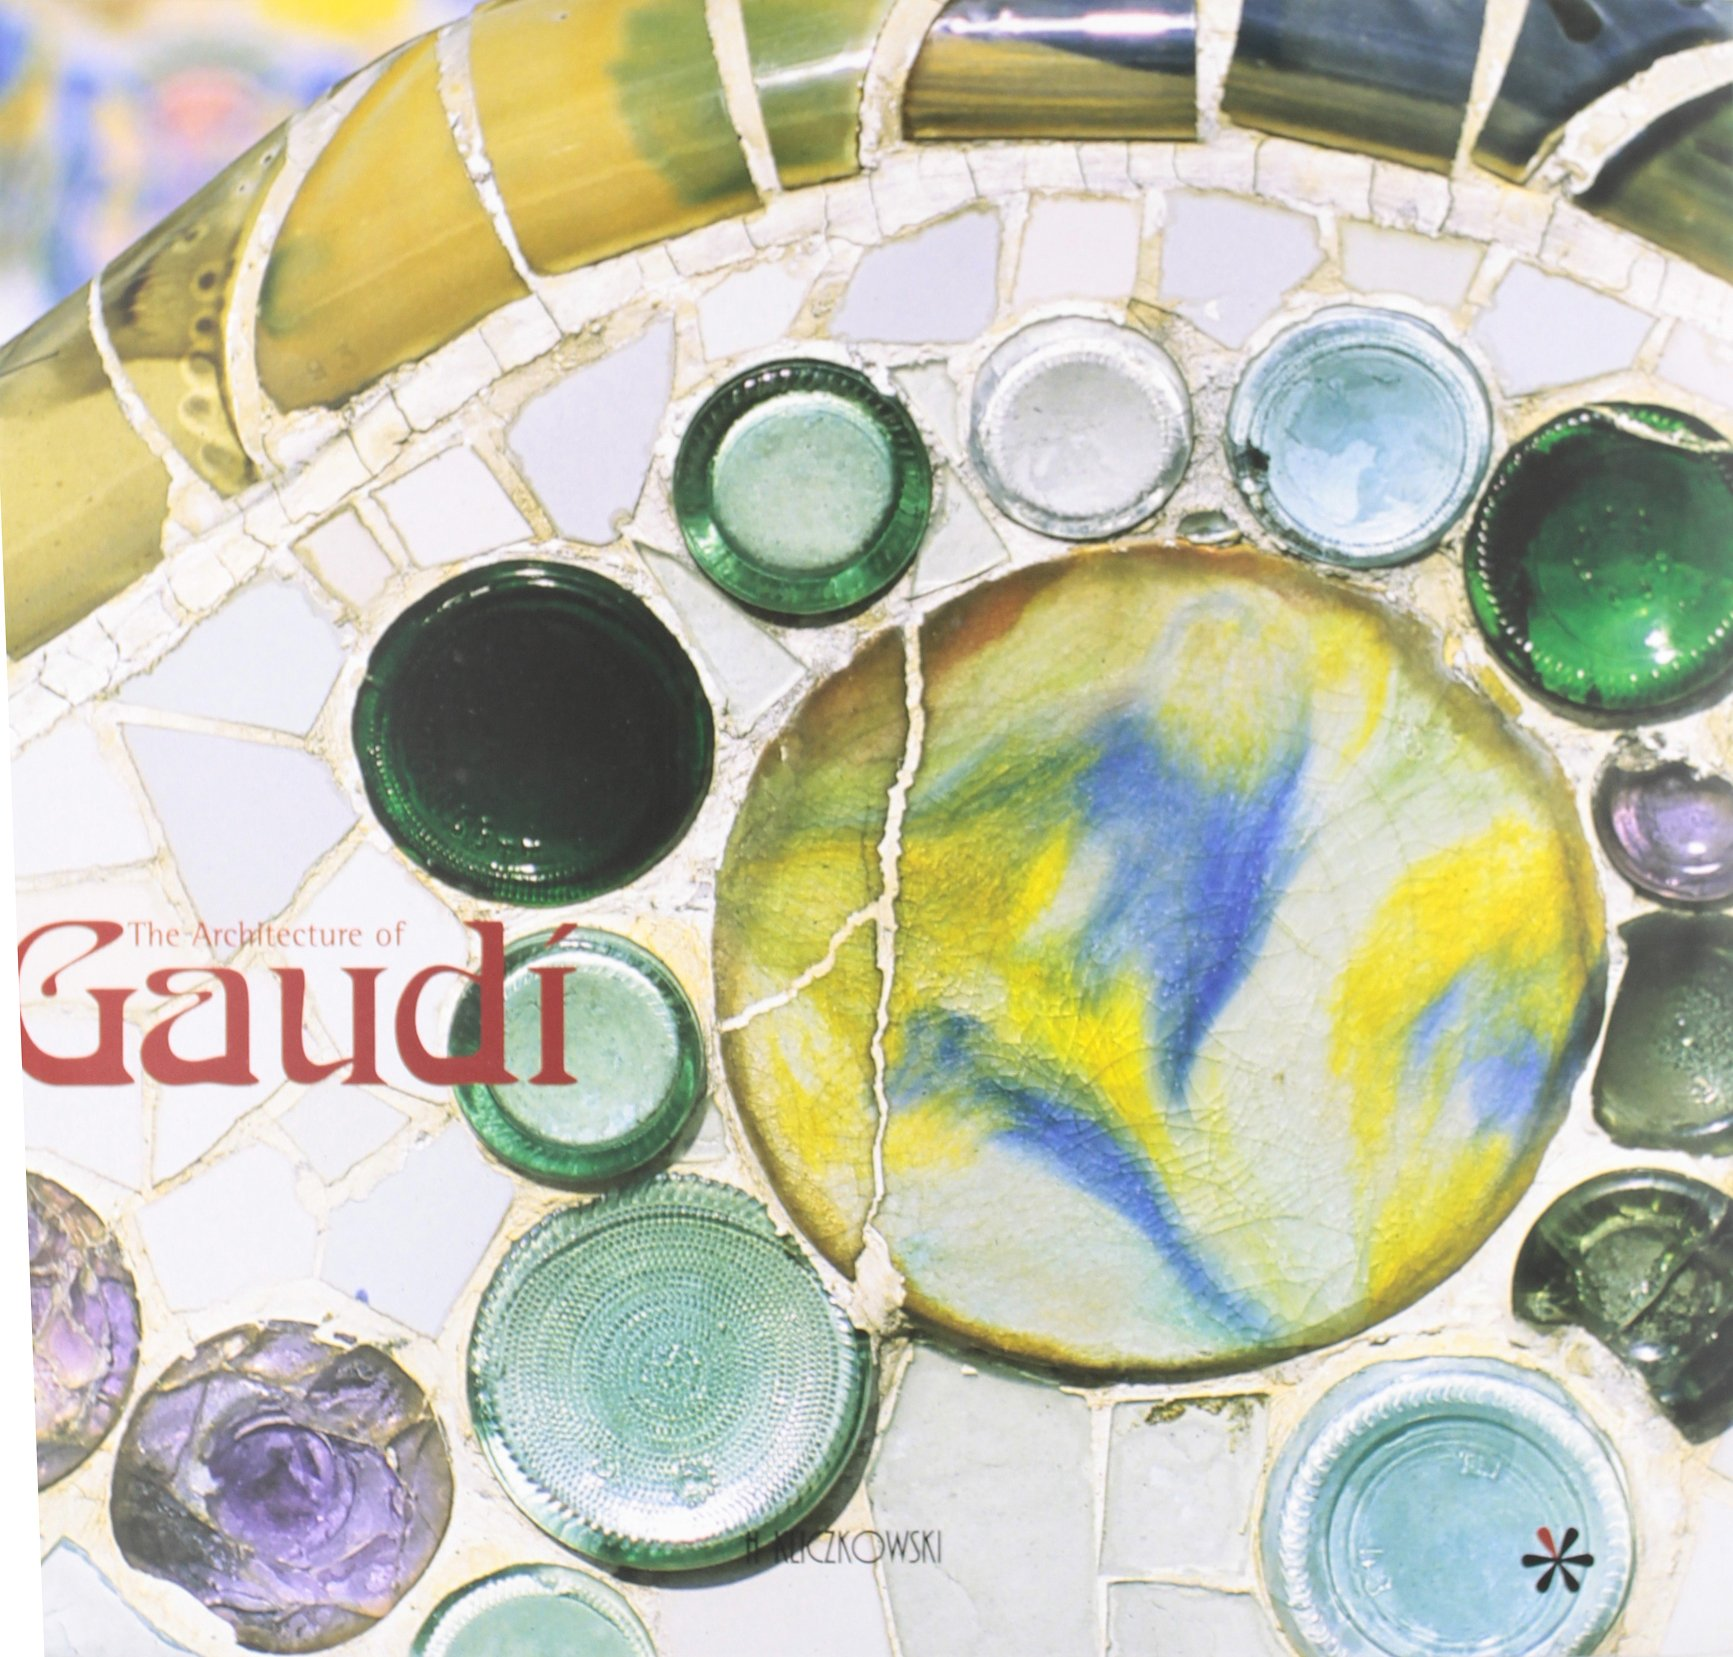 The Architecture of Gaudi Paperback – May 1, 2004